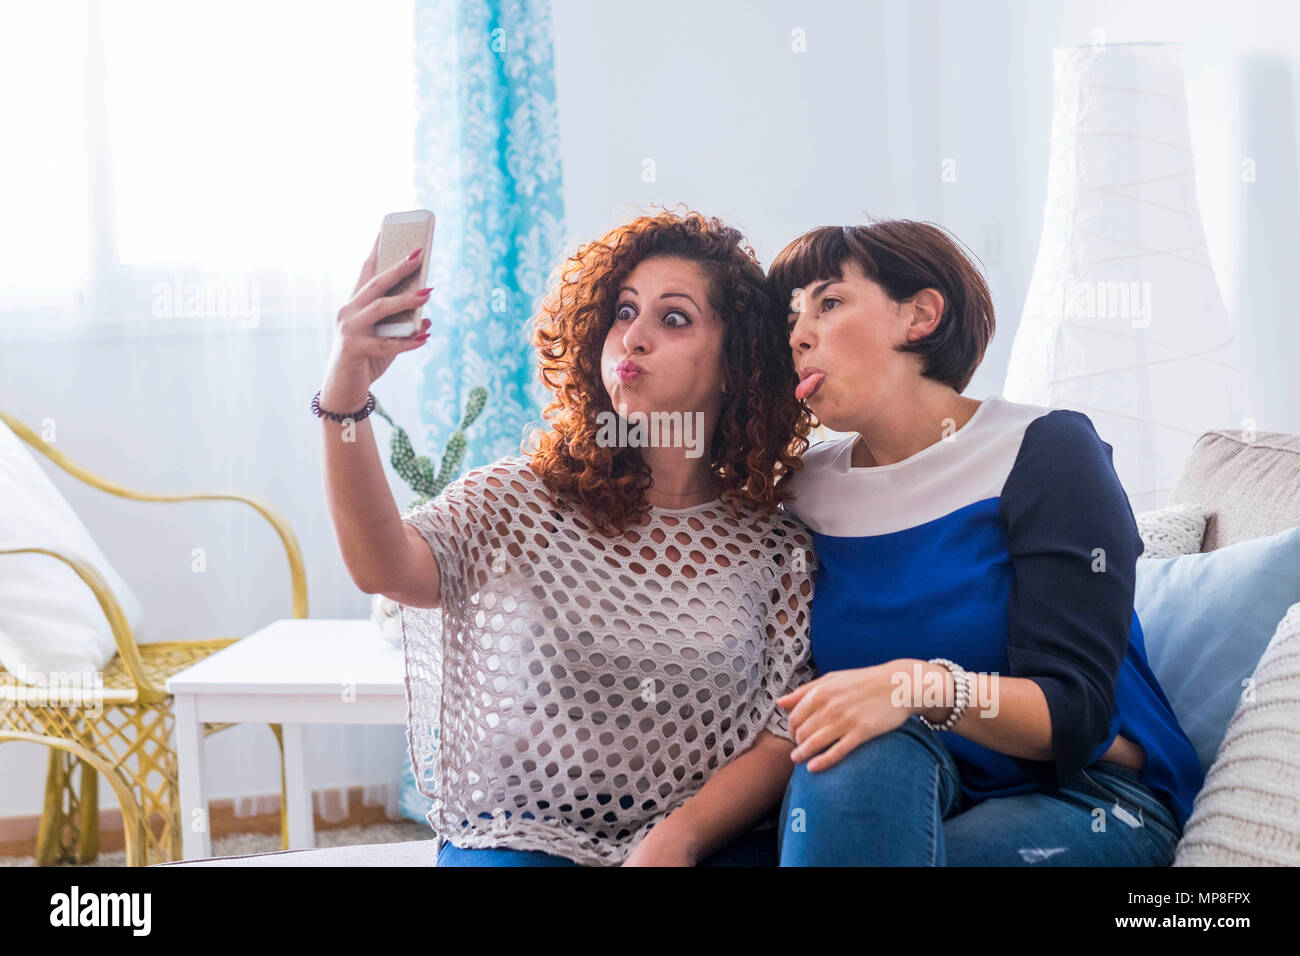 two young women taking pictures with mobile phone at home doing nice and funny expressions. best friends that love to communicate on the net with frie - Stock Image